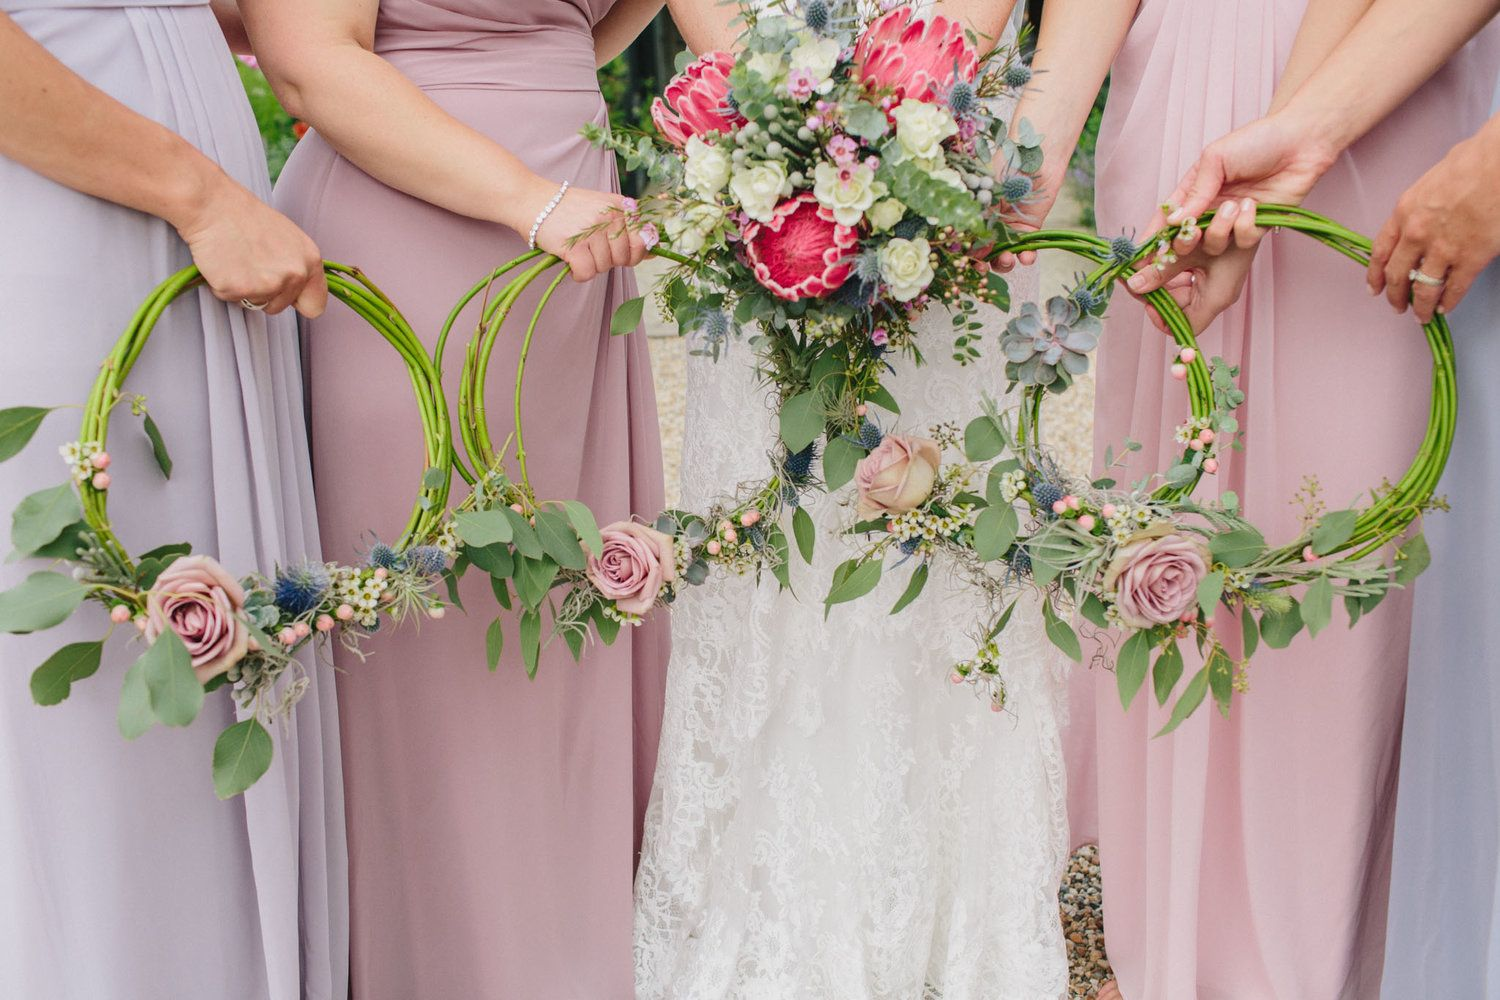 Corsages instead of bouquets? 1